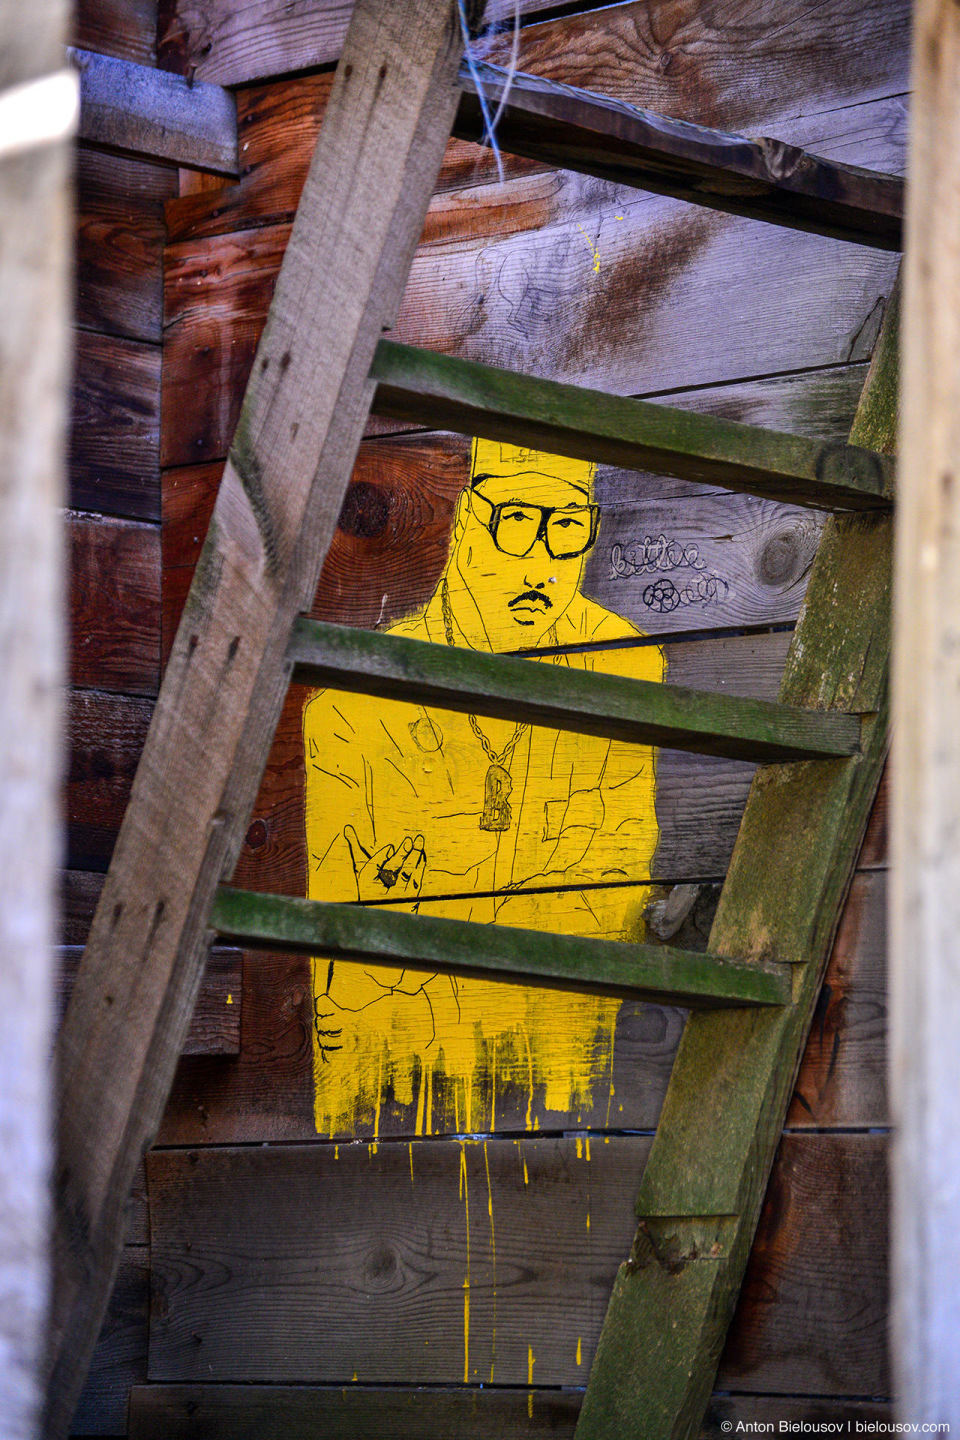 Graffiti in Osoyoos decayed farm